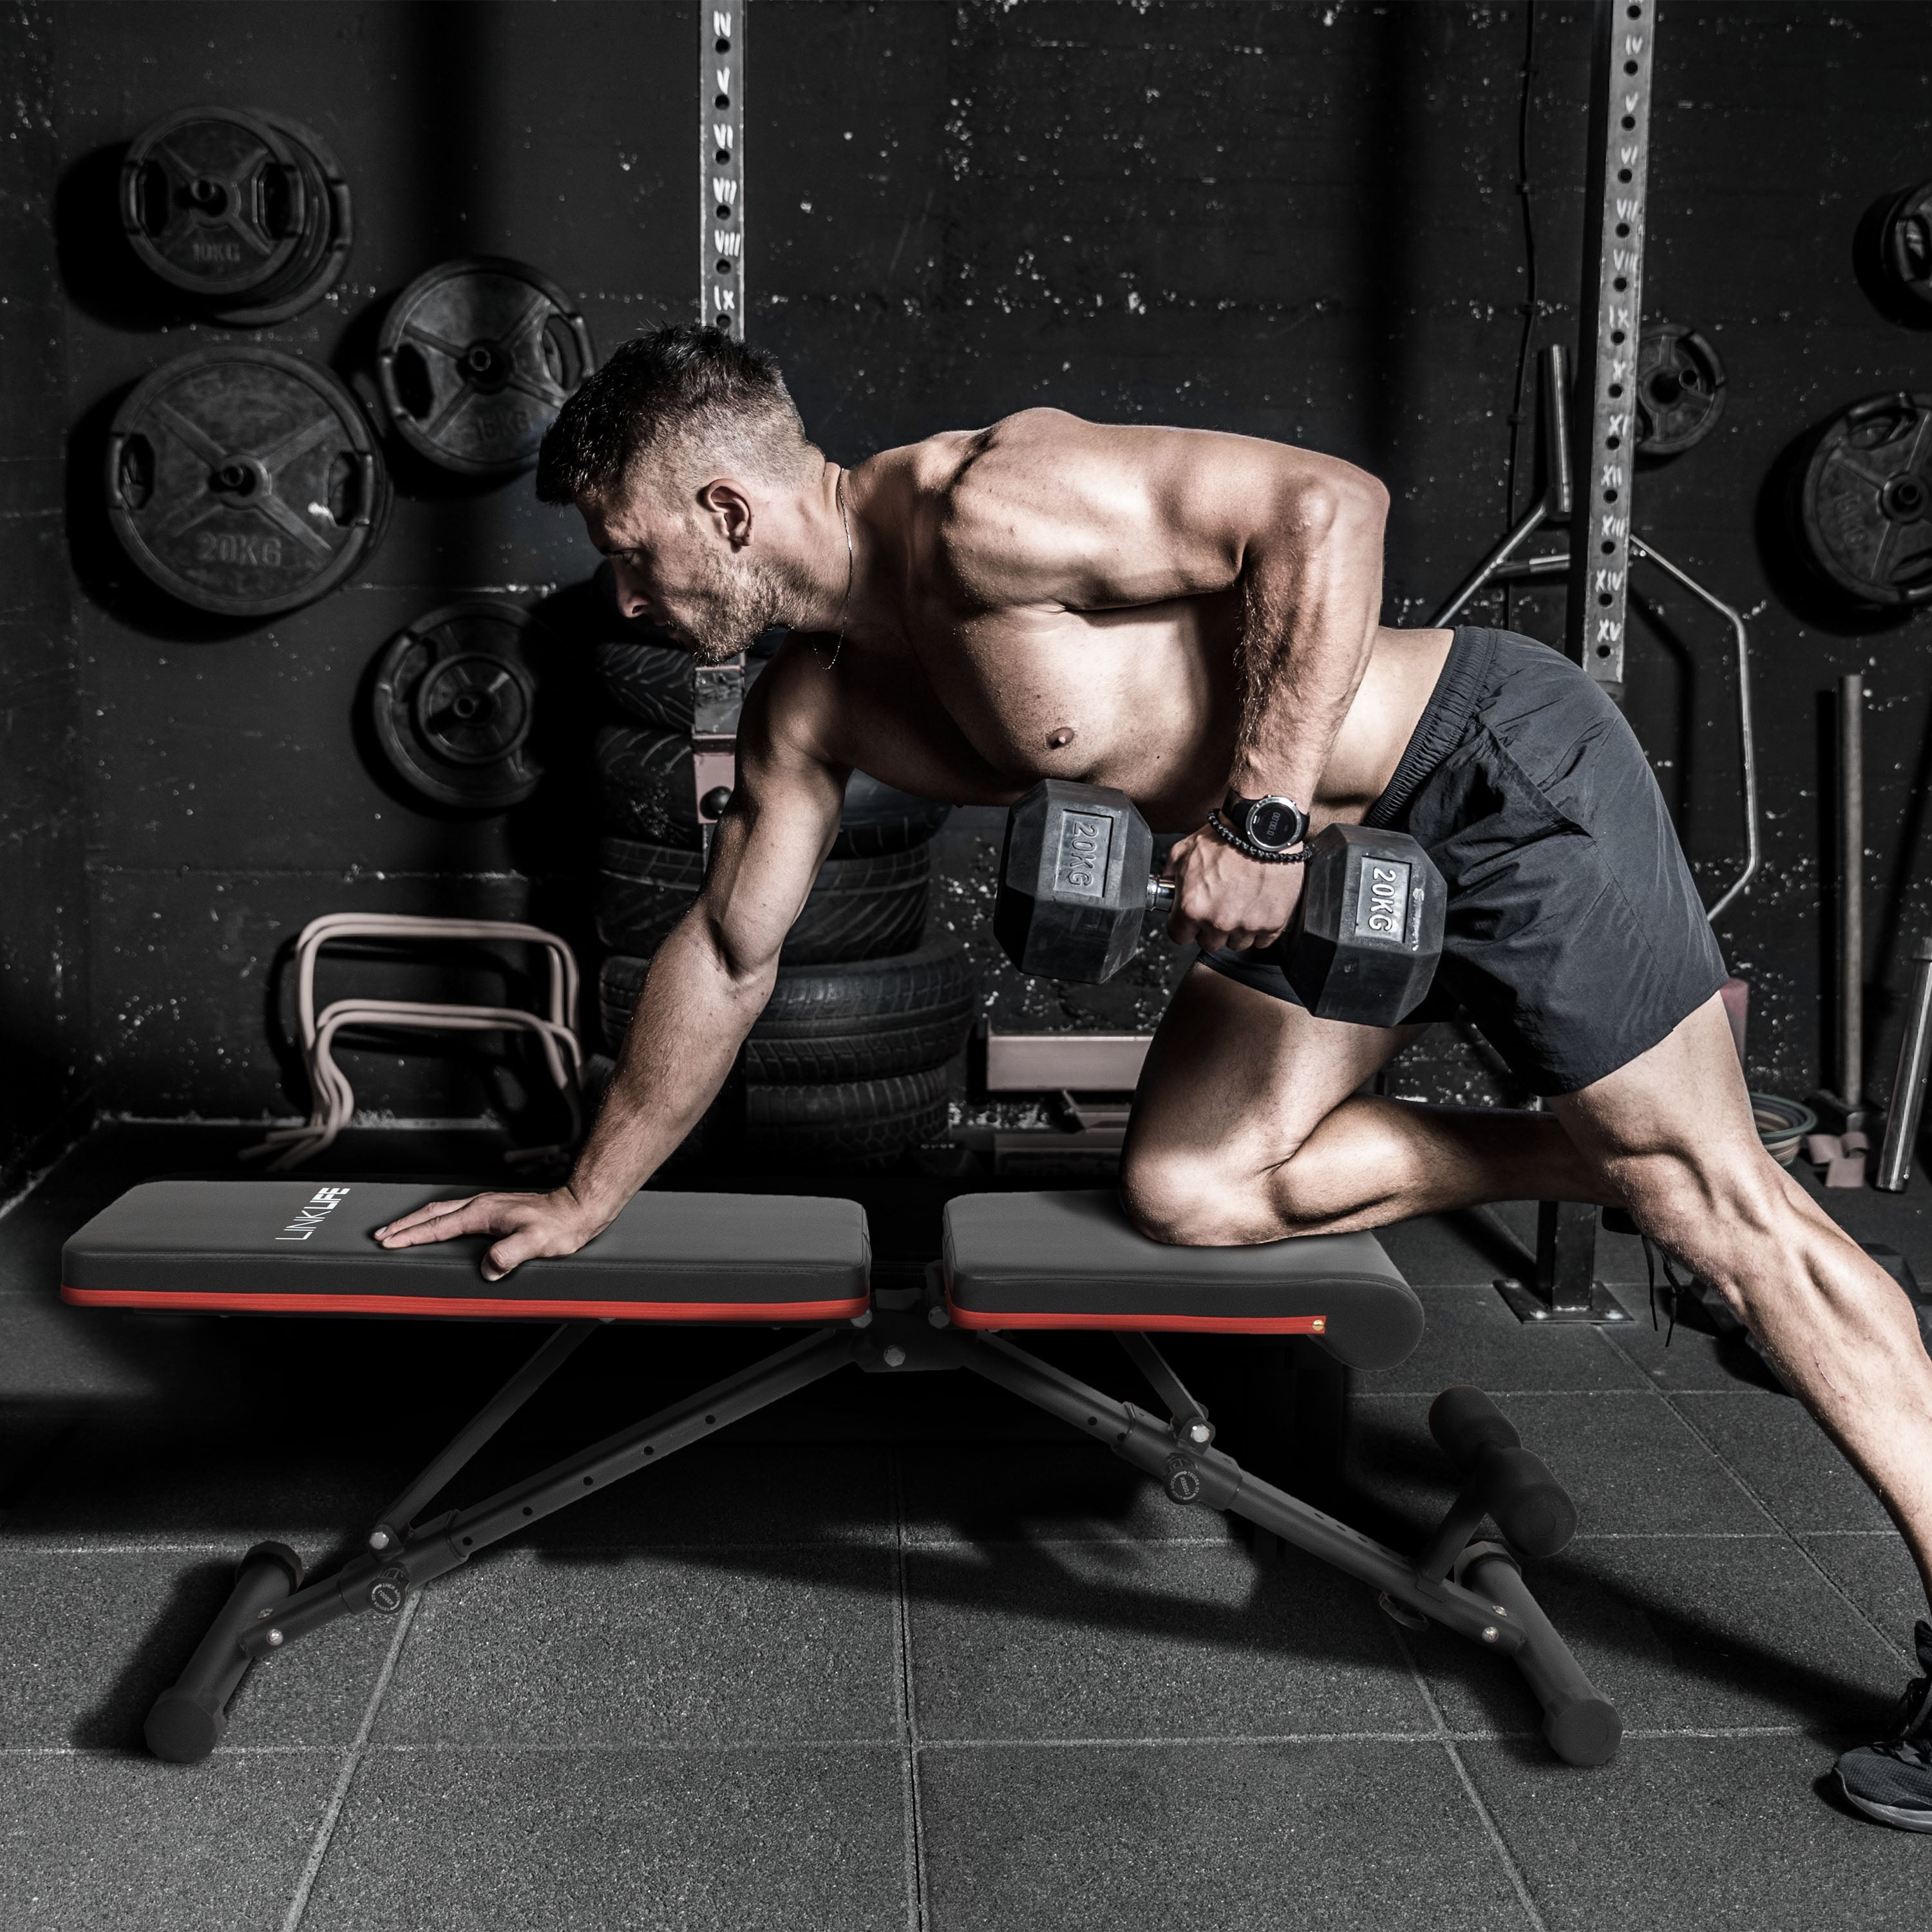 An image of a man using the workout bench.